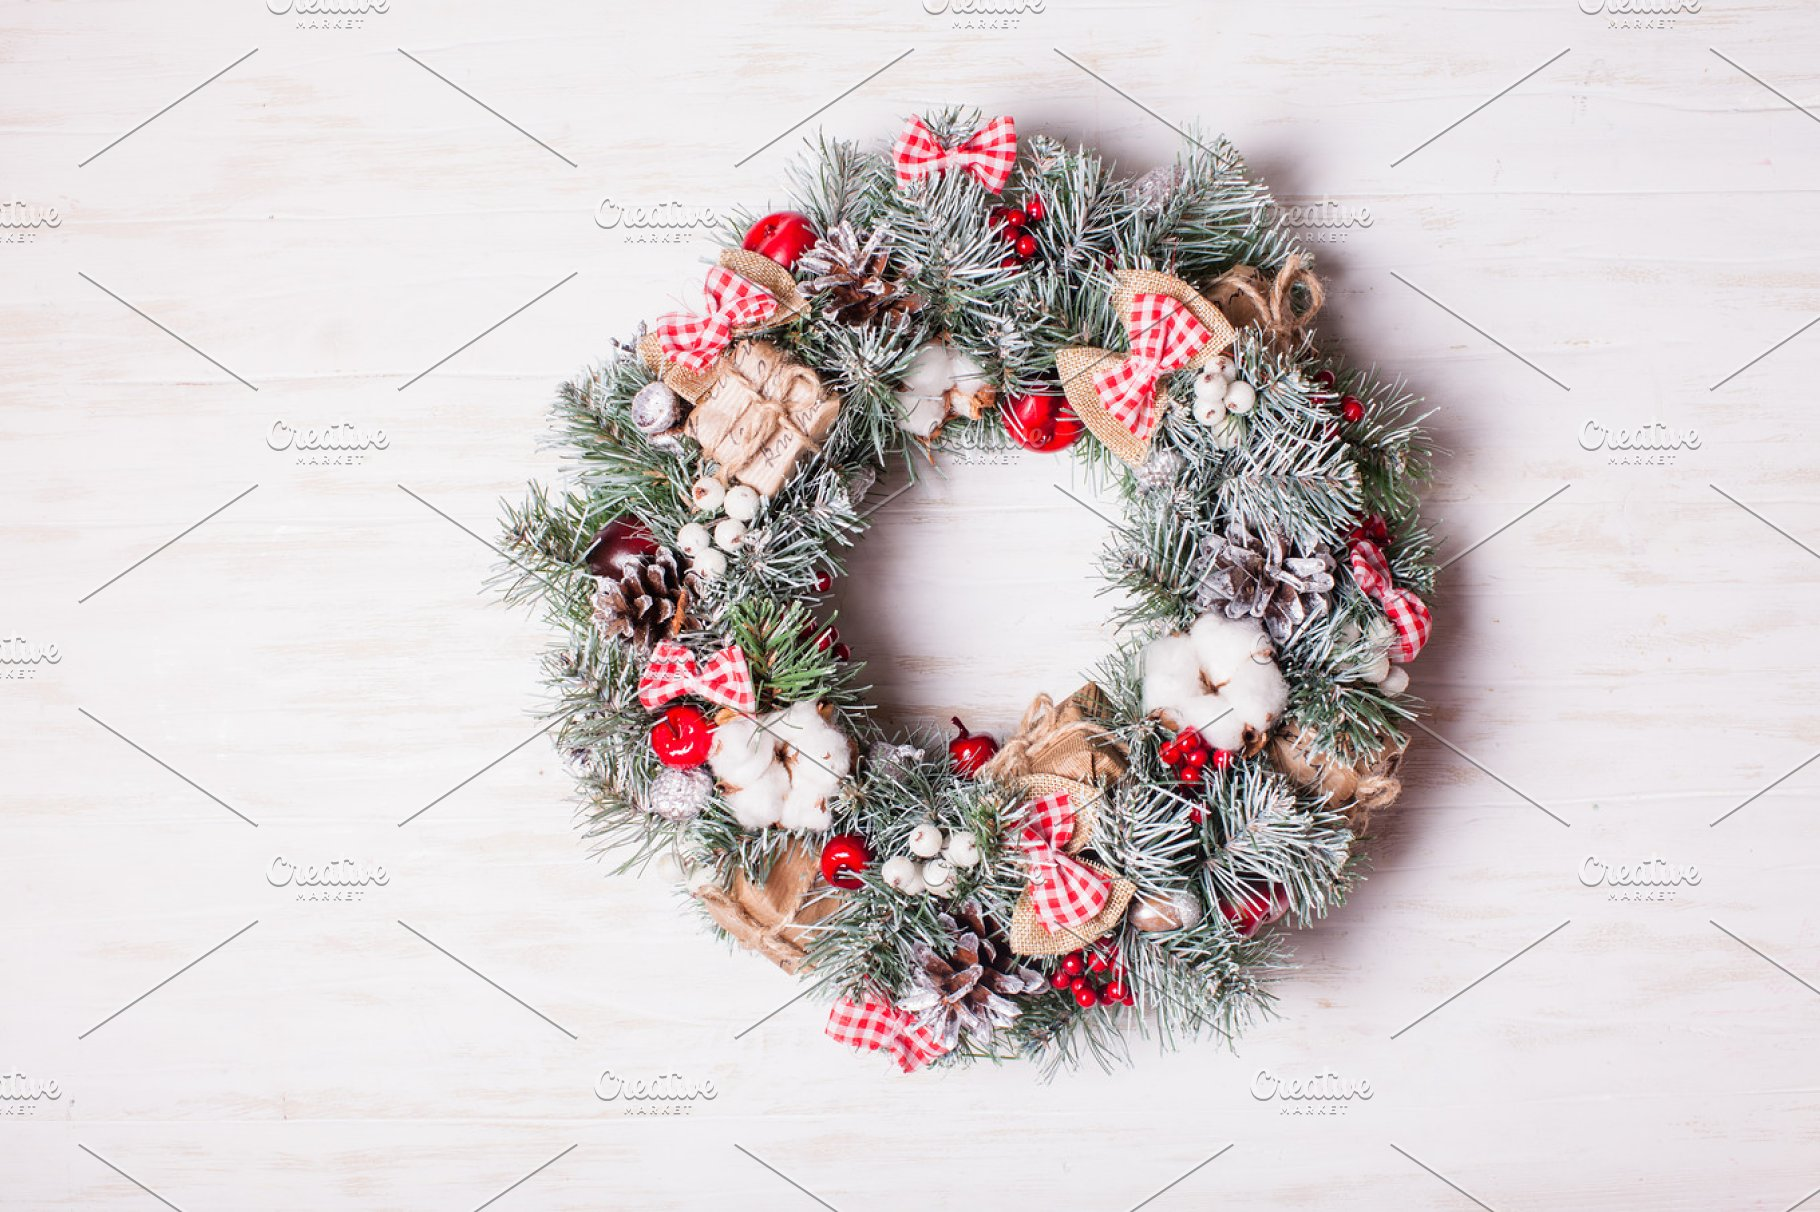 Red And White Christmas Wreath.Red And White Christmas Wreath